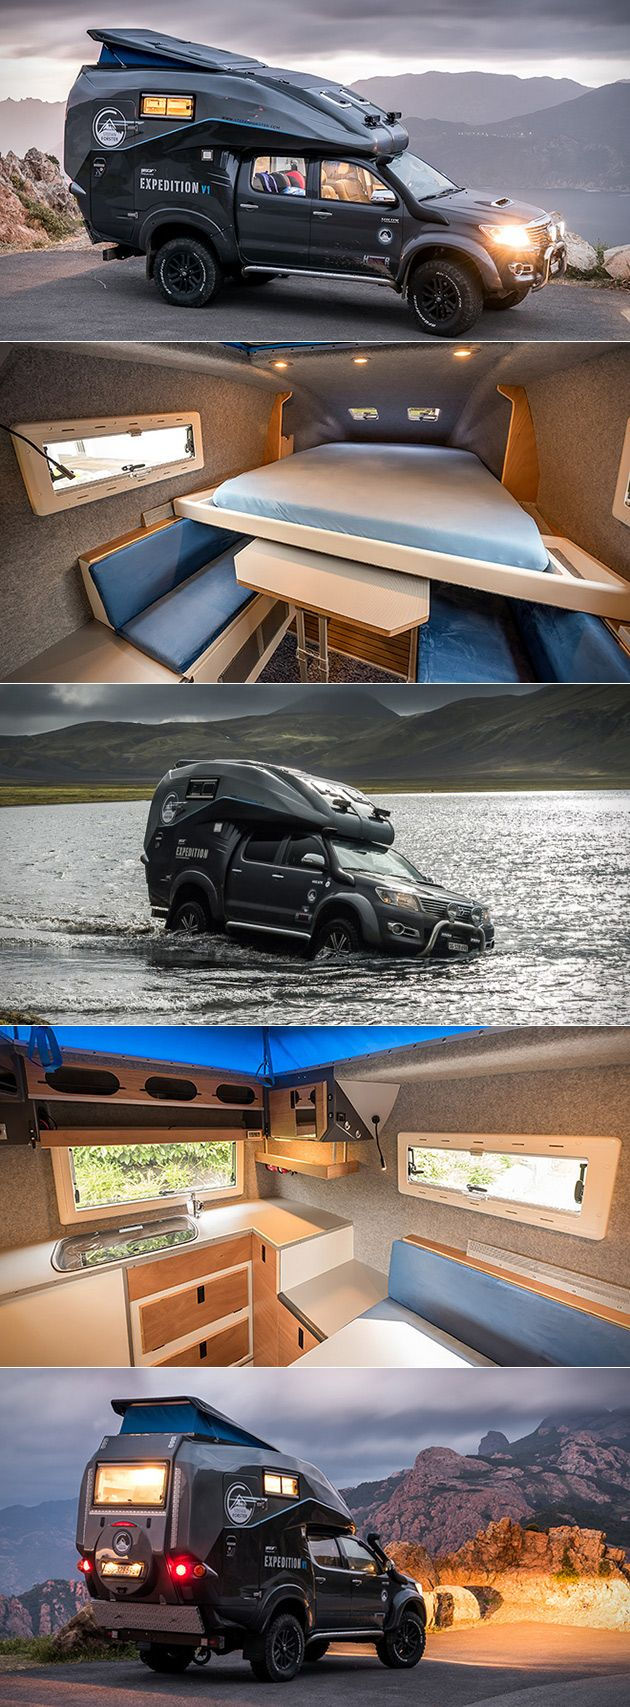 cool Toyota Hilux Expedition V1 Vehicle is a Mini Home on Wheels That Goes Anywhere, Even Water Check more at https://epeak.info/2017/04/06/toyota-hilux-expedition-v1-vehicle-is-a-mini-home-on-wheels-that-goes-anywhere-even-water/